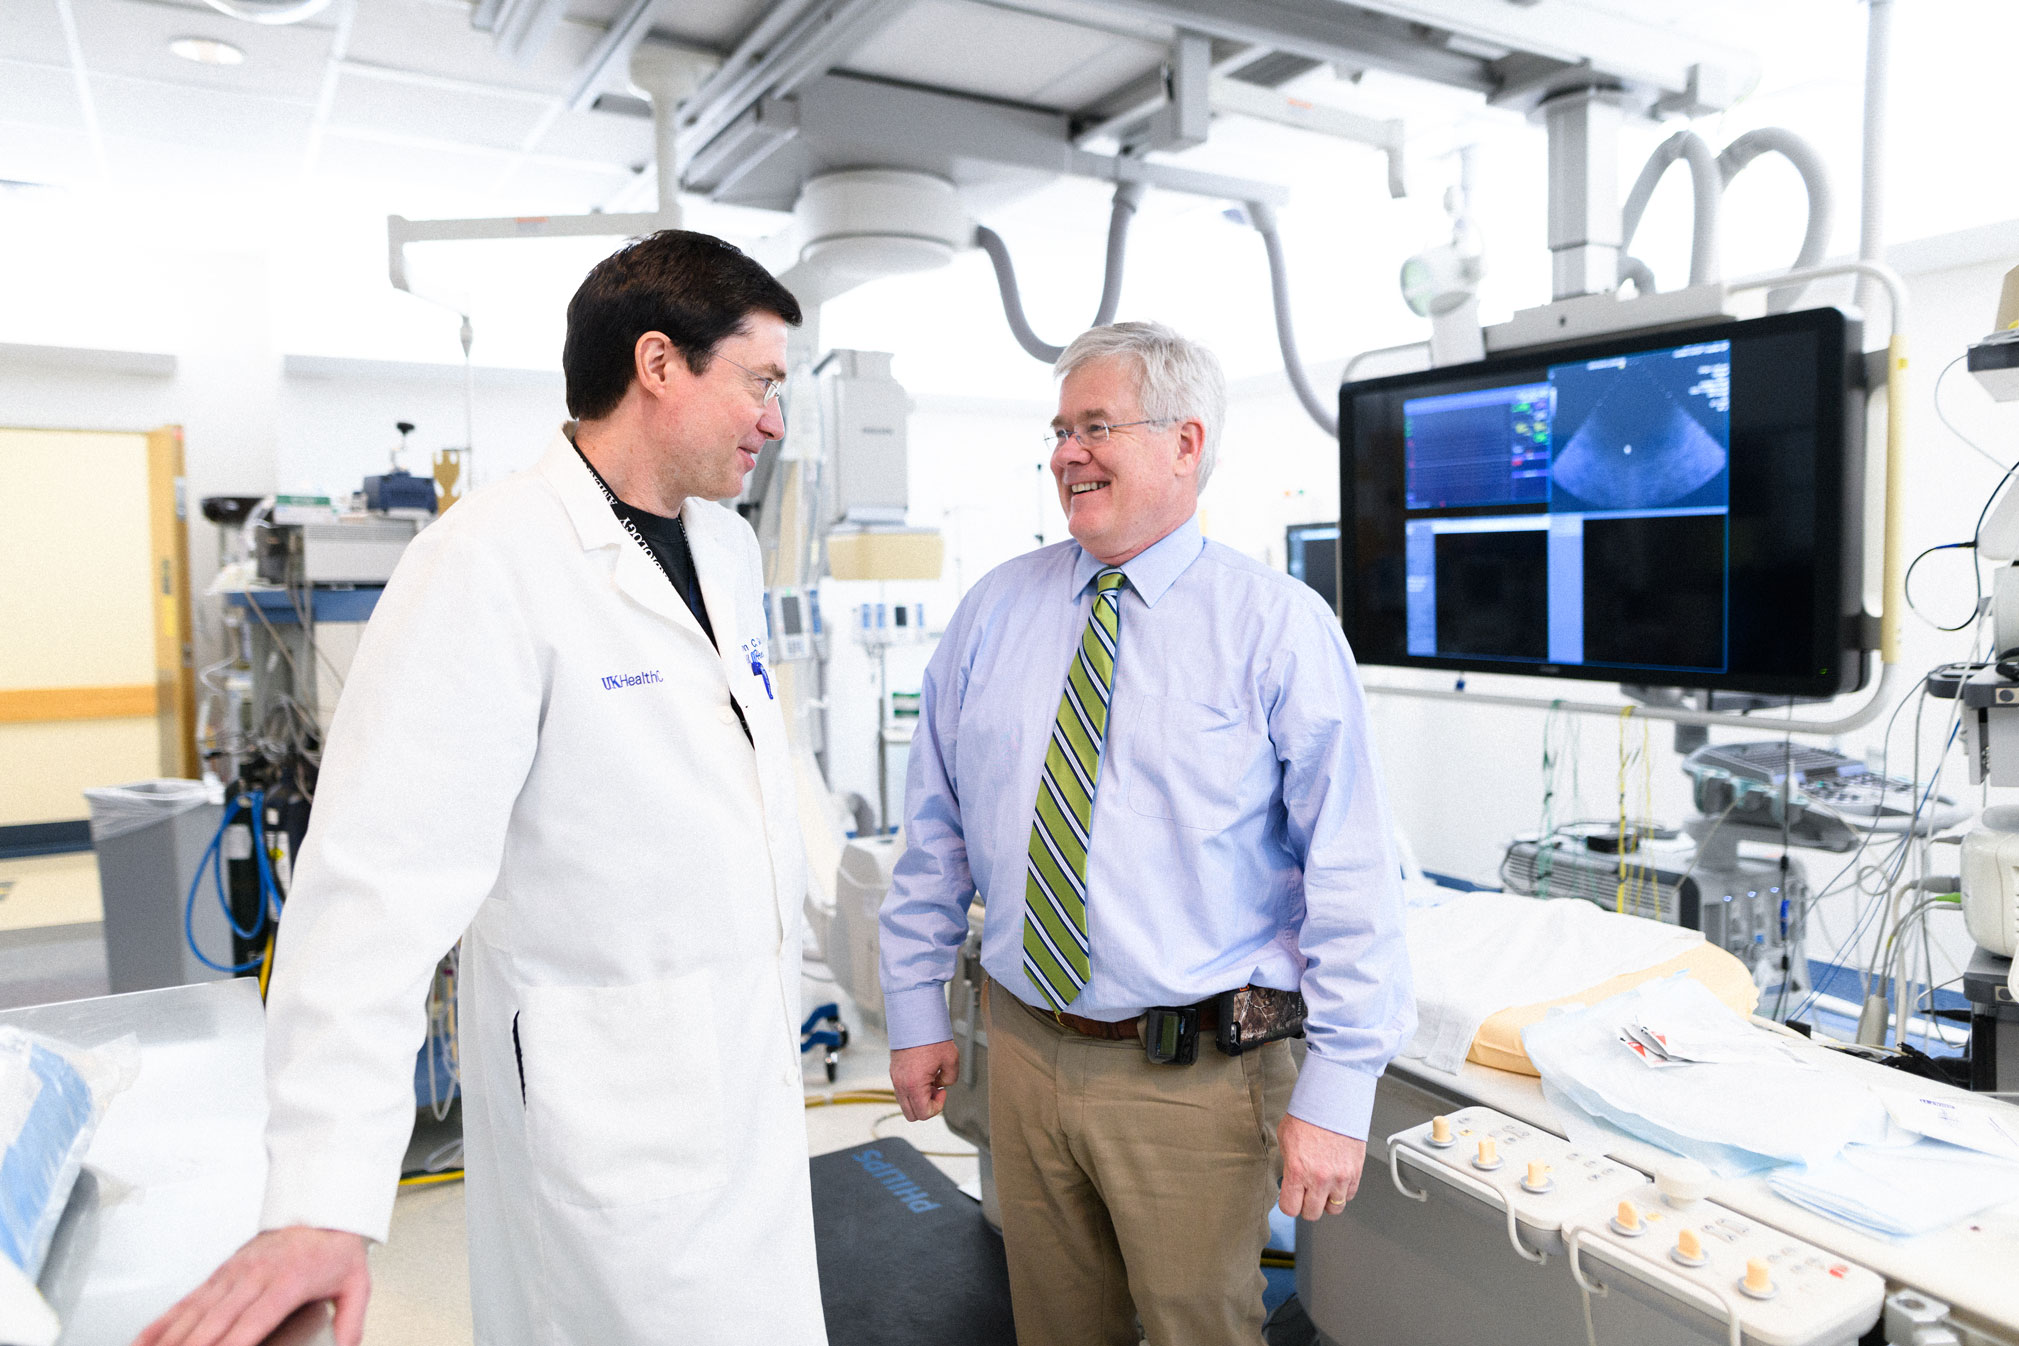 Dr. McLarney talks with Dr. Gurley in the hospital.